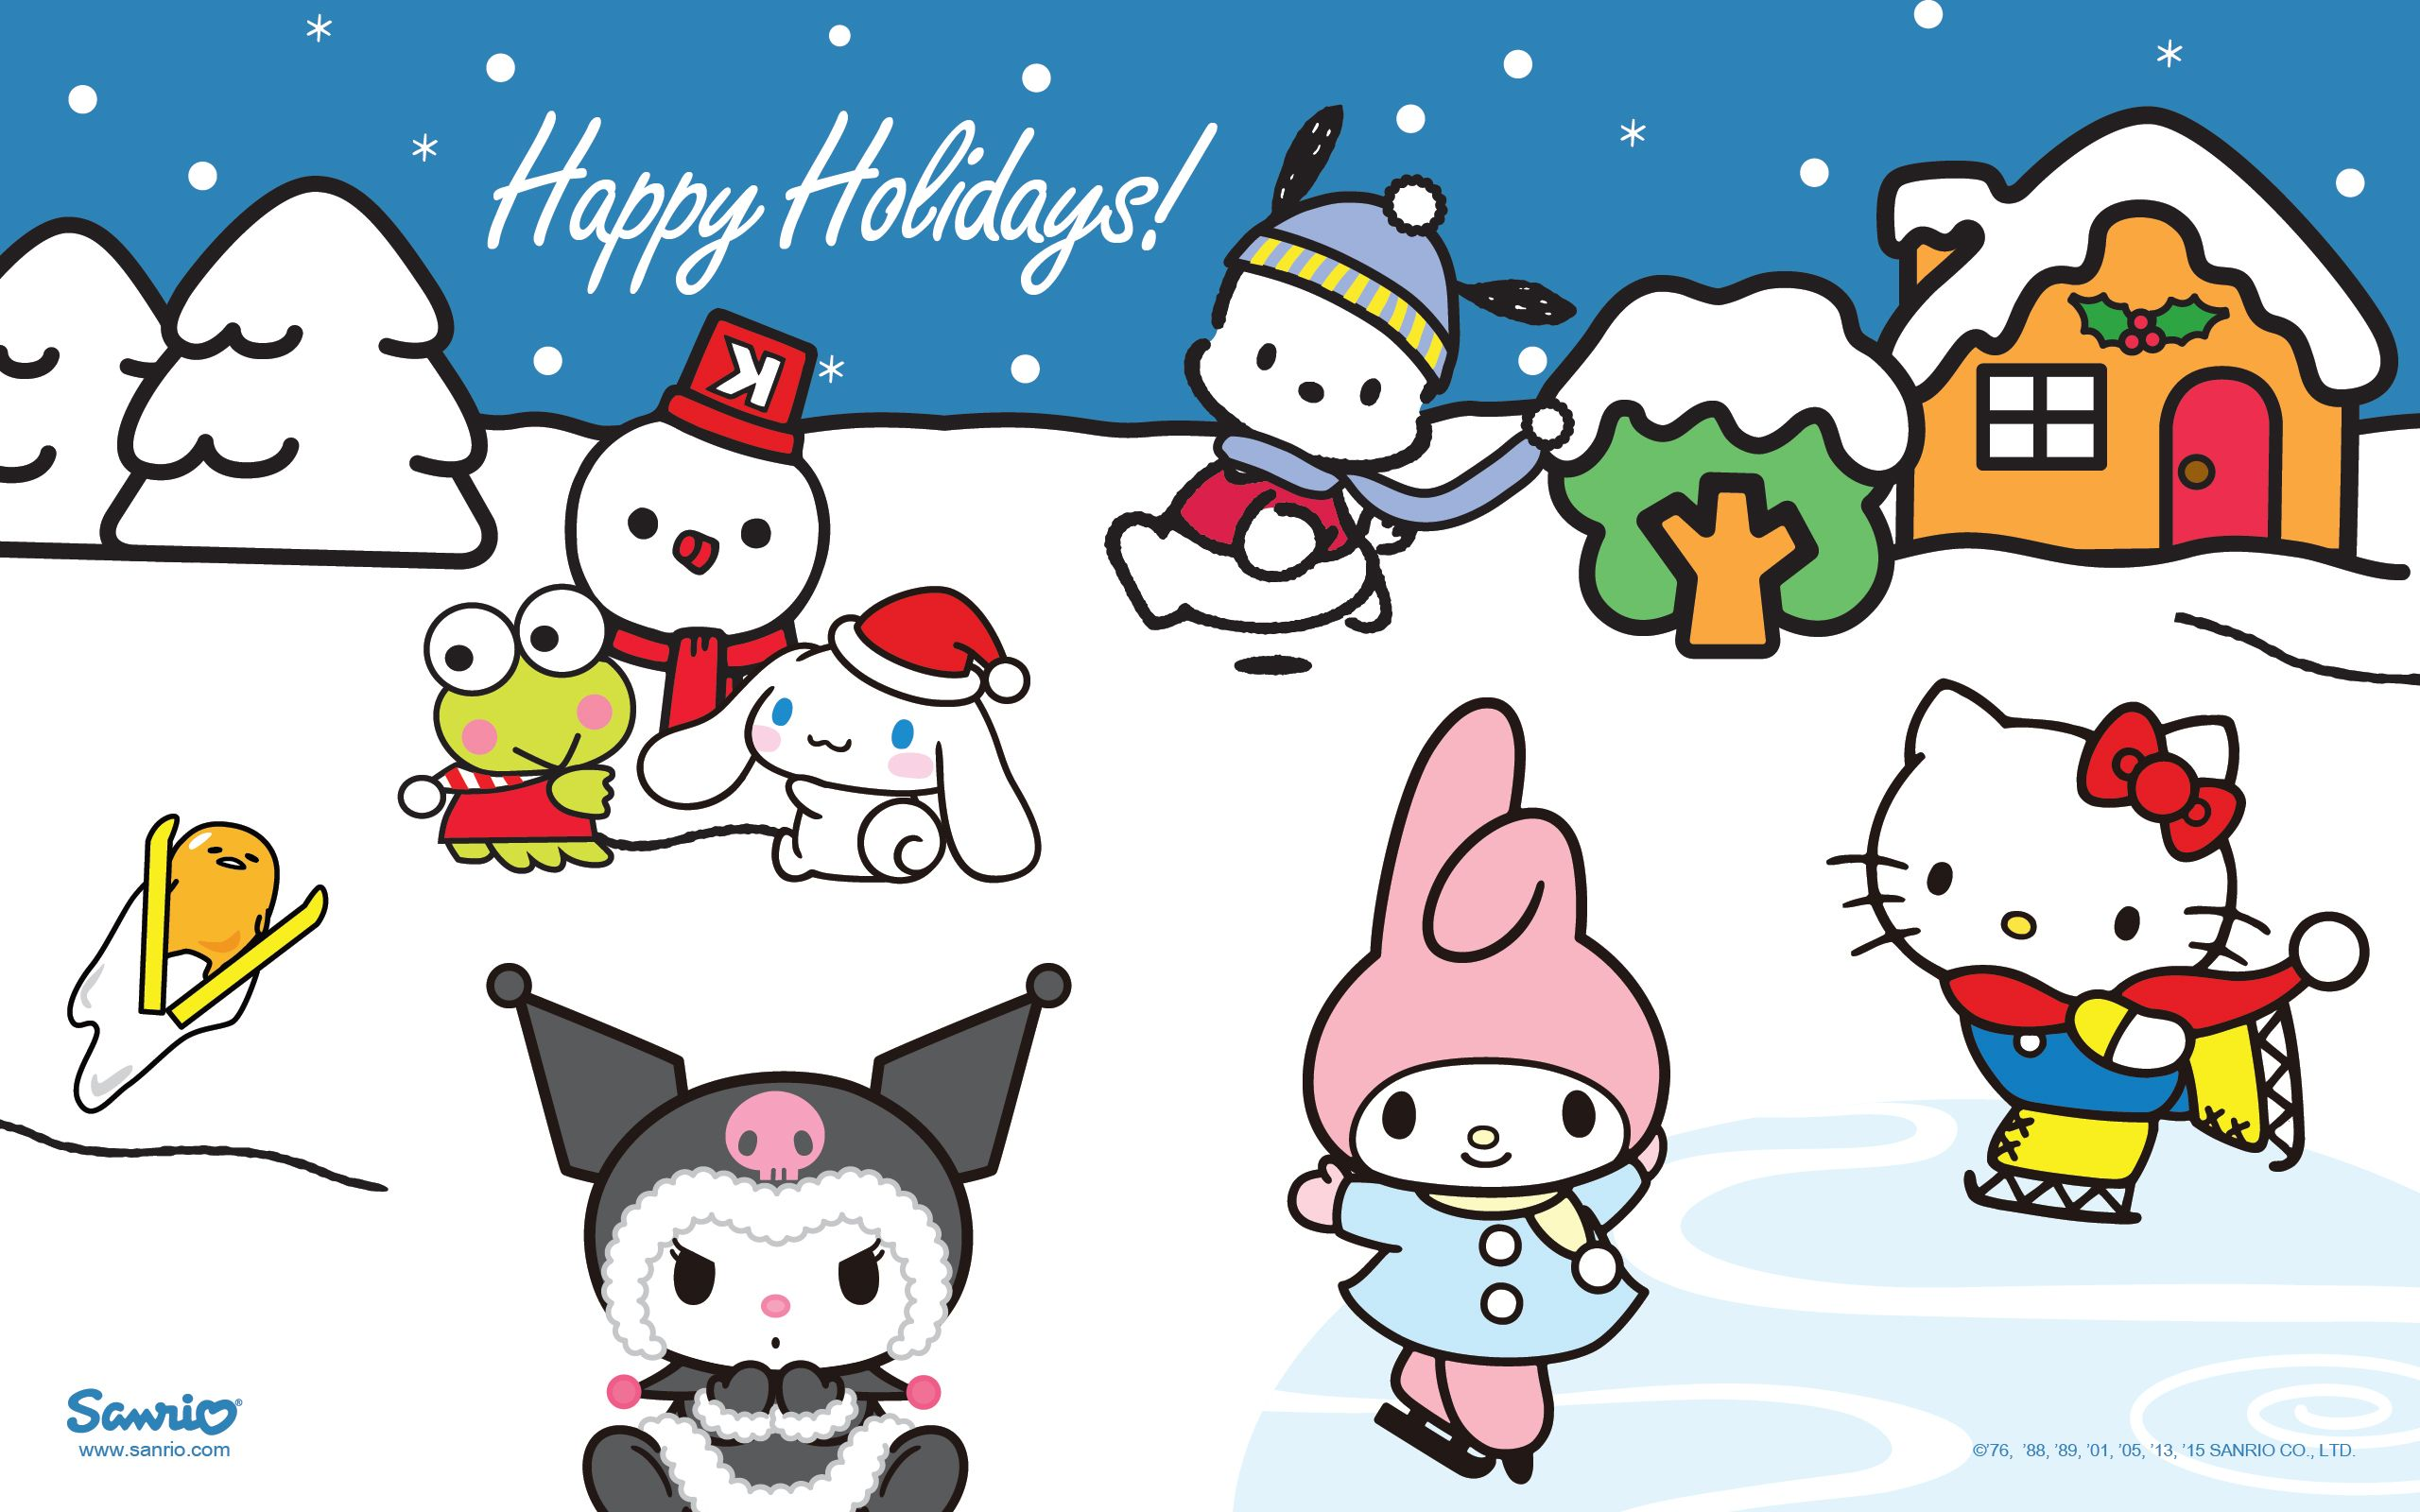 Must see Wallpaper Hello Kitty Holiday - 75eaddfd6fd4eef276894eb2467f71ab  Perfect Image Reference_126617.jpg